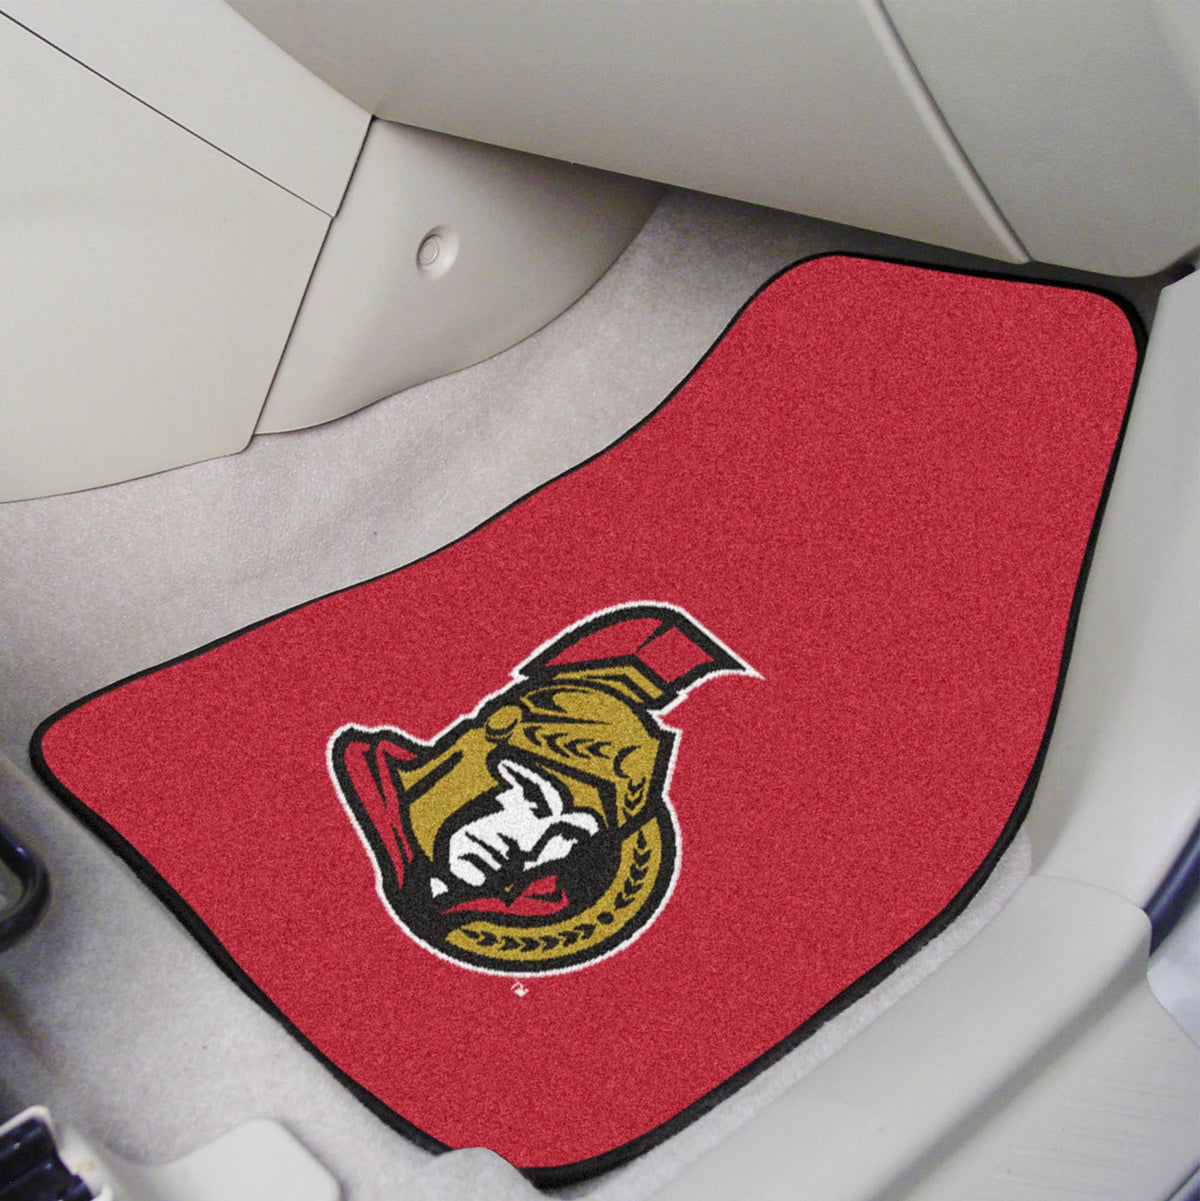 NHL - Carpet Car Mat, 2-Piece Set NHL Mats, Front Car Mats, 2-pc Carpet Car Mat Set, NHL, Auto Fan Mats Ottawa Senators